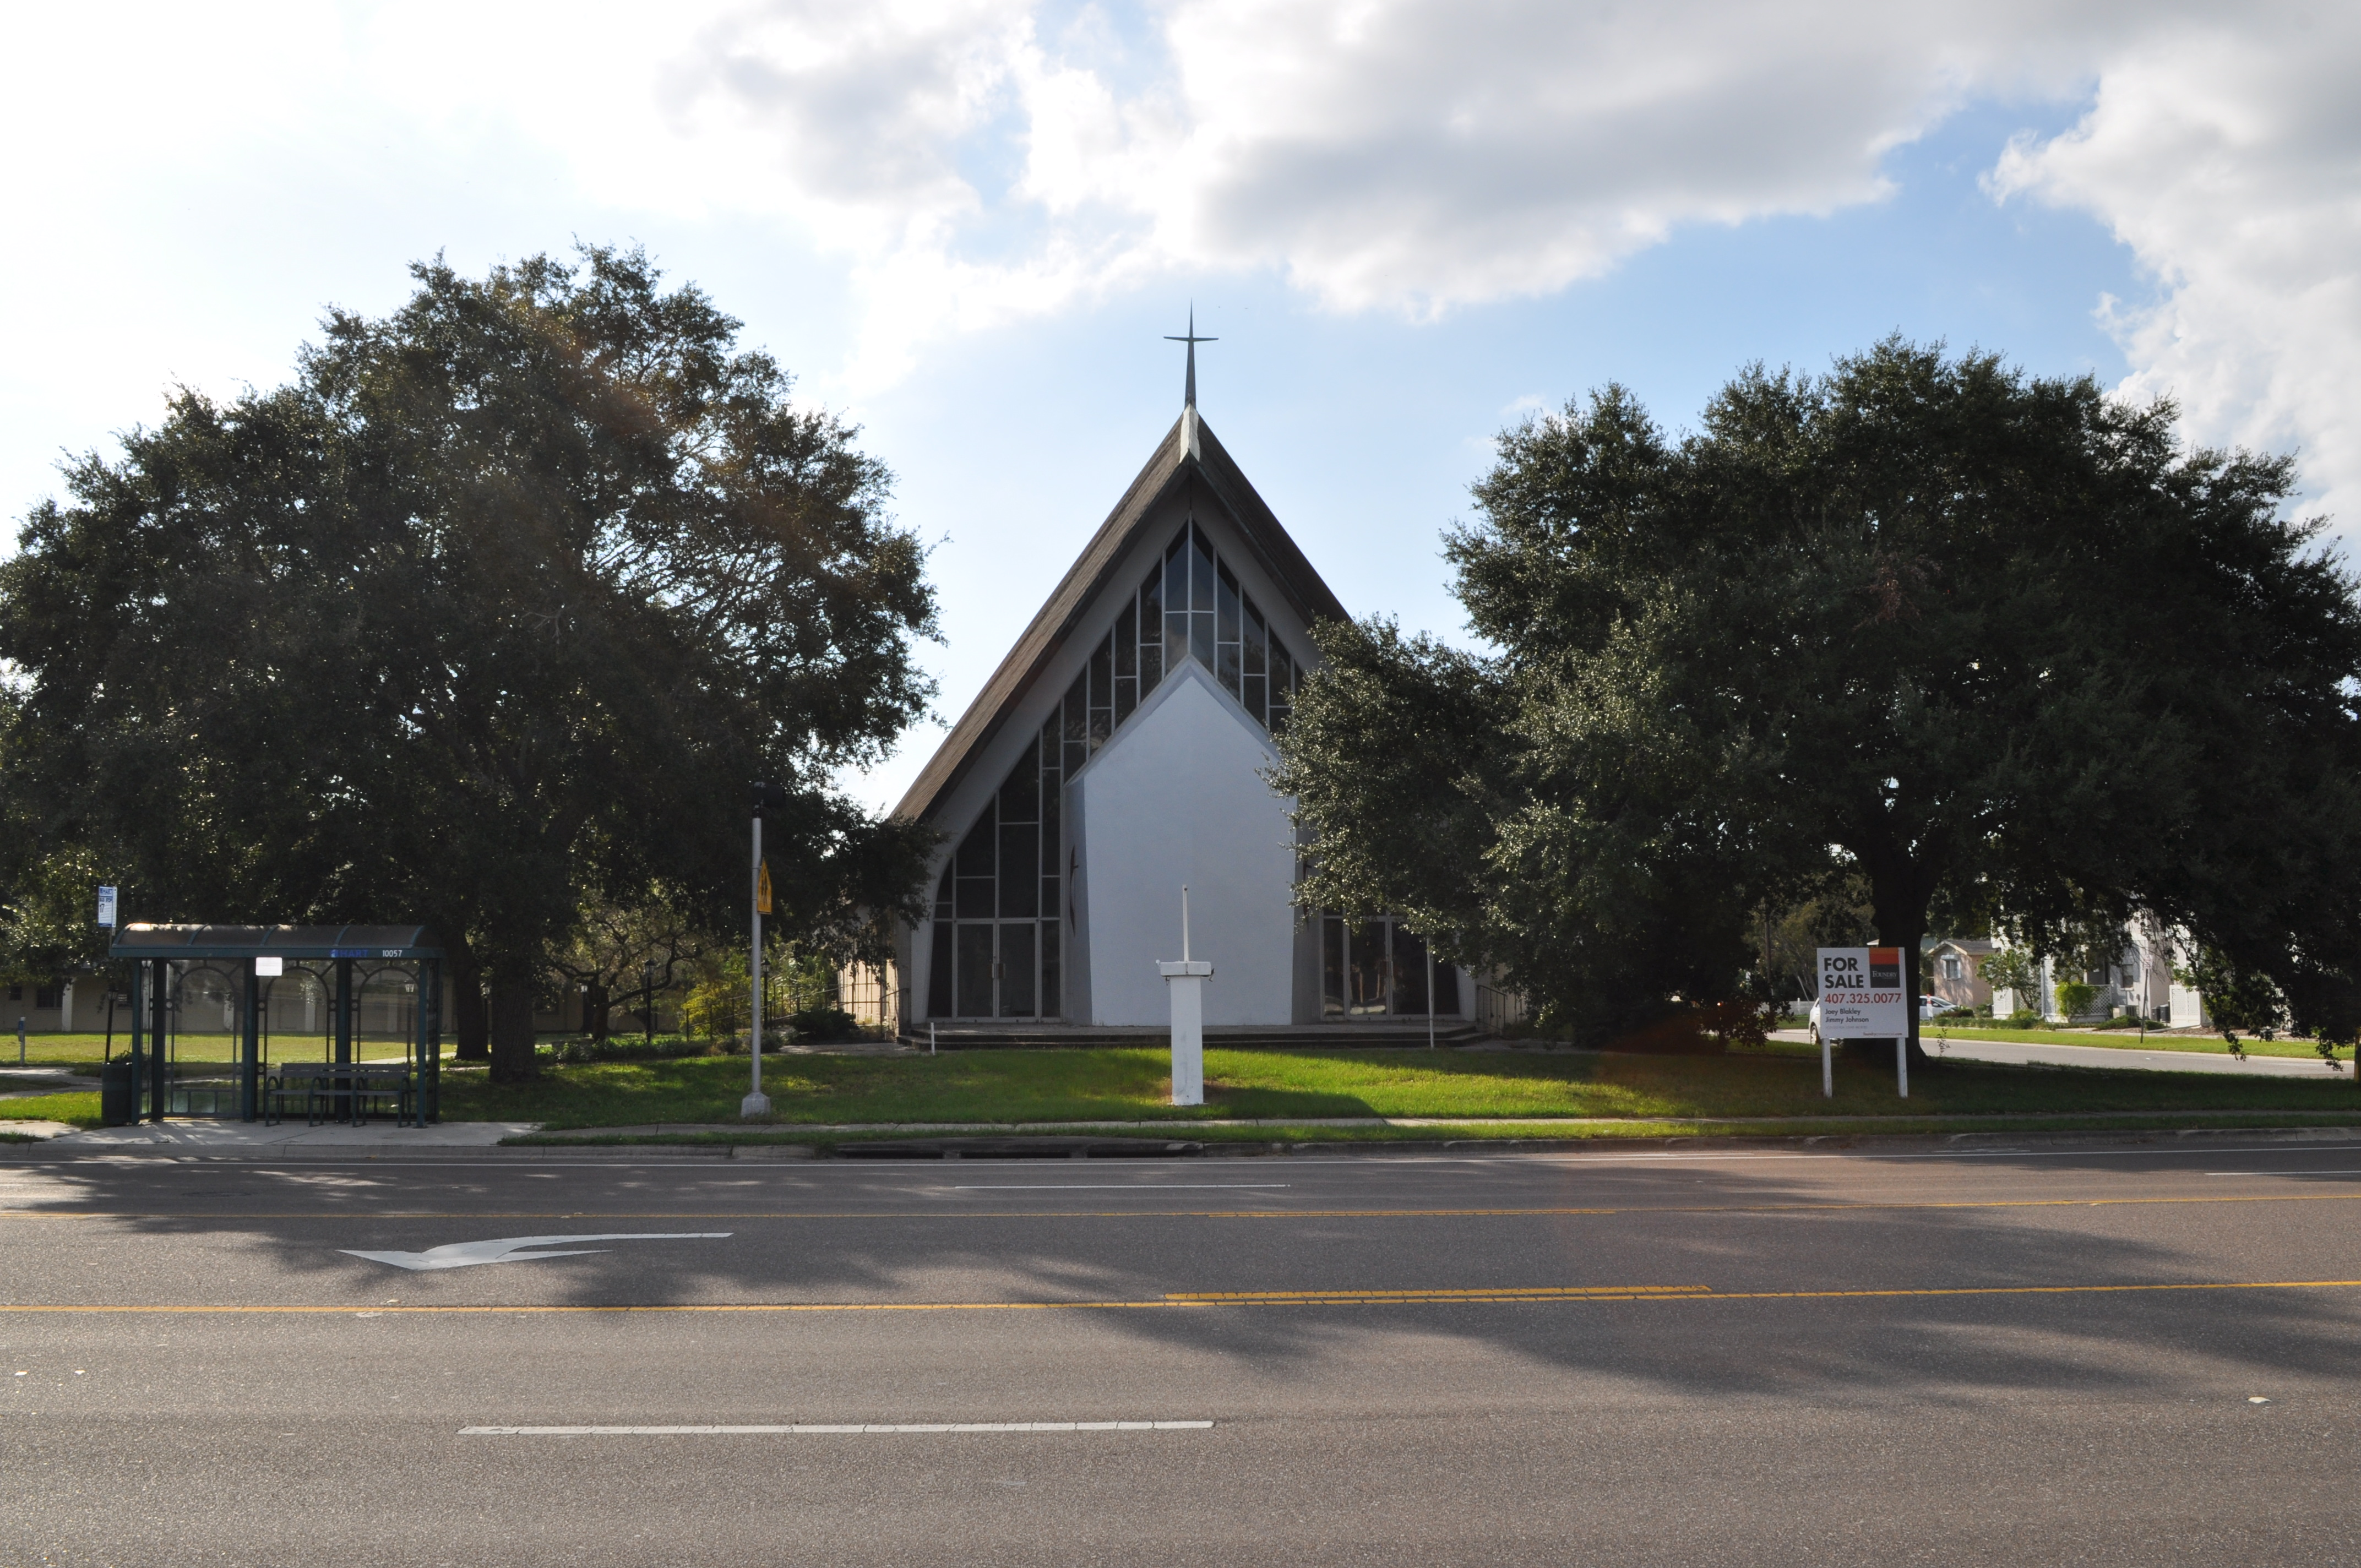 Church & School/Redevelopment Opportunity in South Tampa